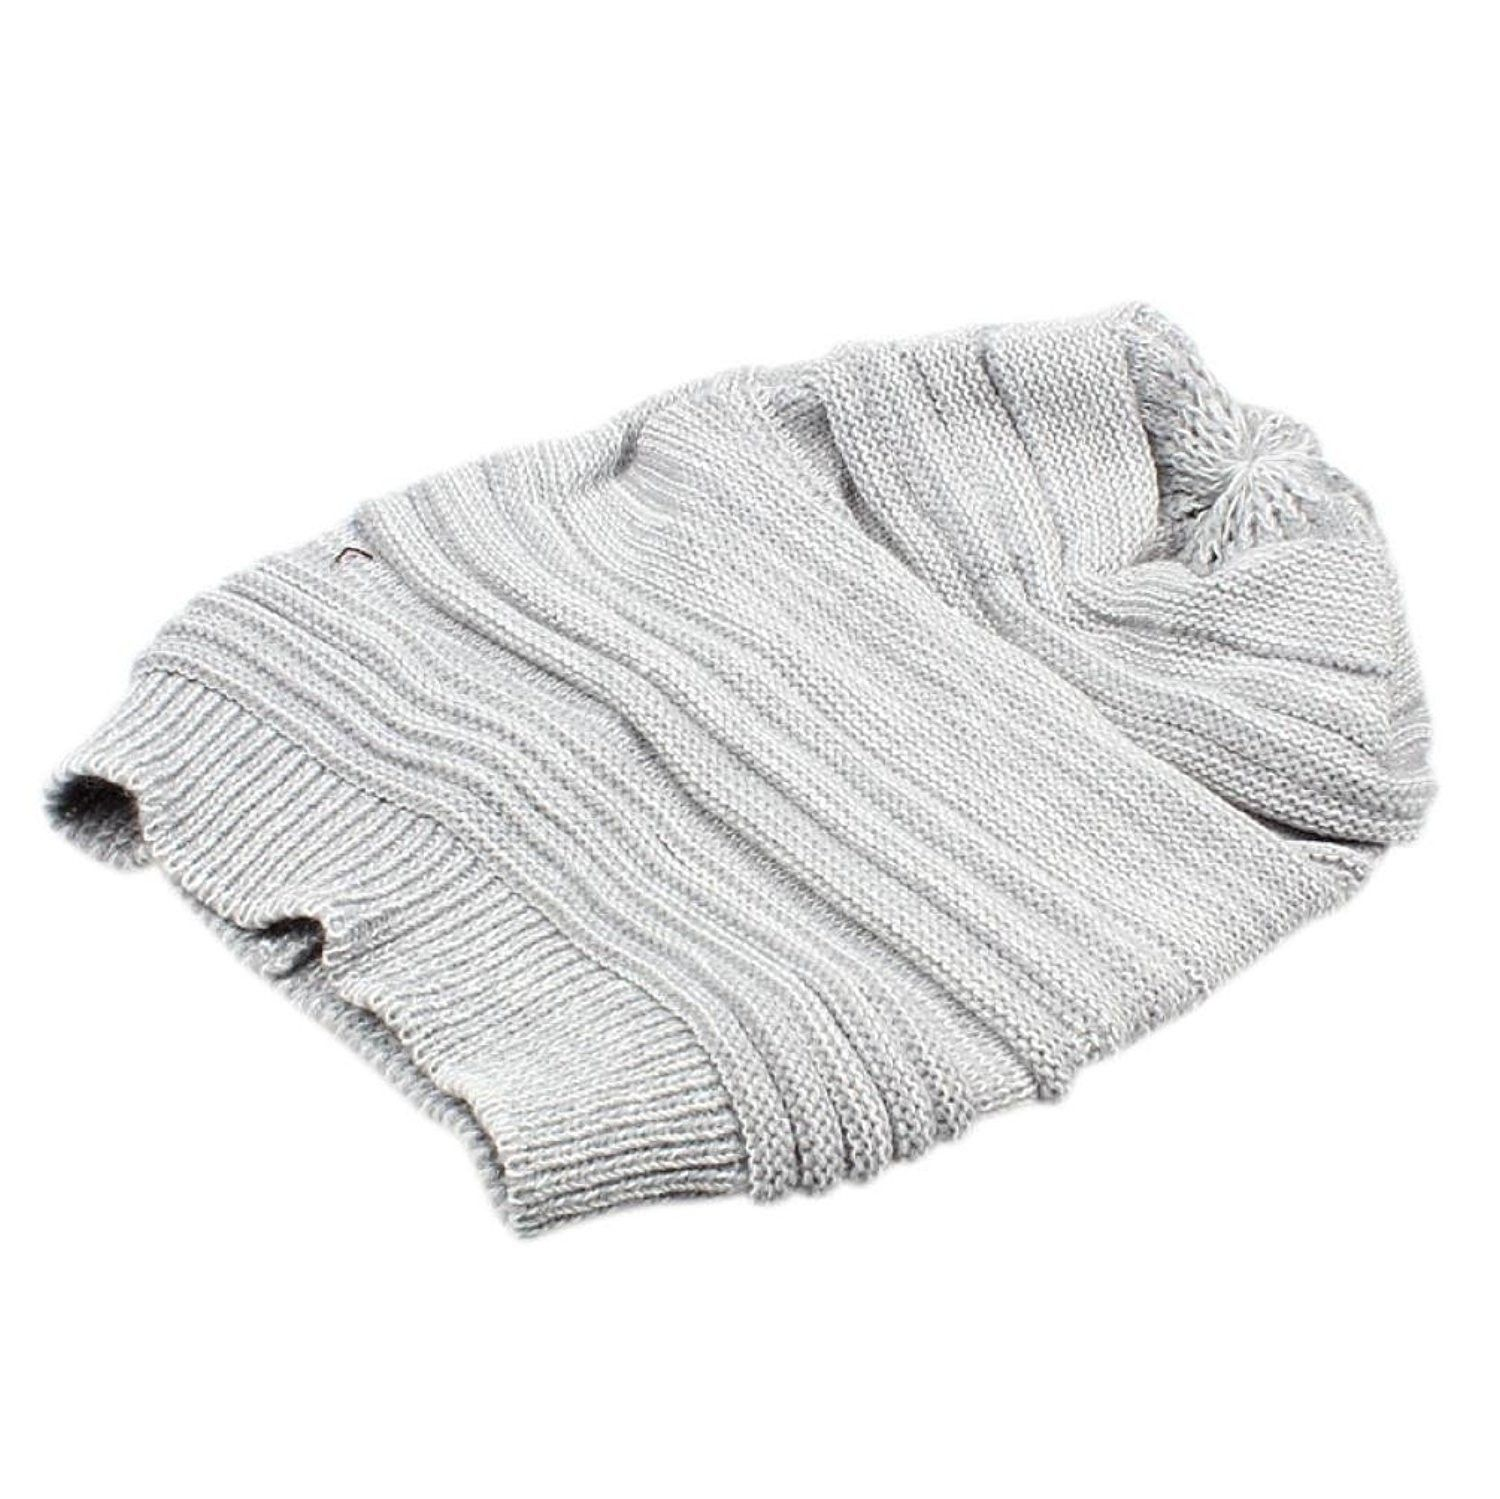 24919eec1df Hot!Unisex Knit Baggy Beanie Beret Winter Warm Oversized Ski Cap Hat ...